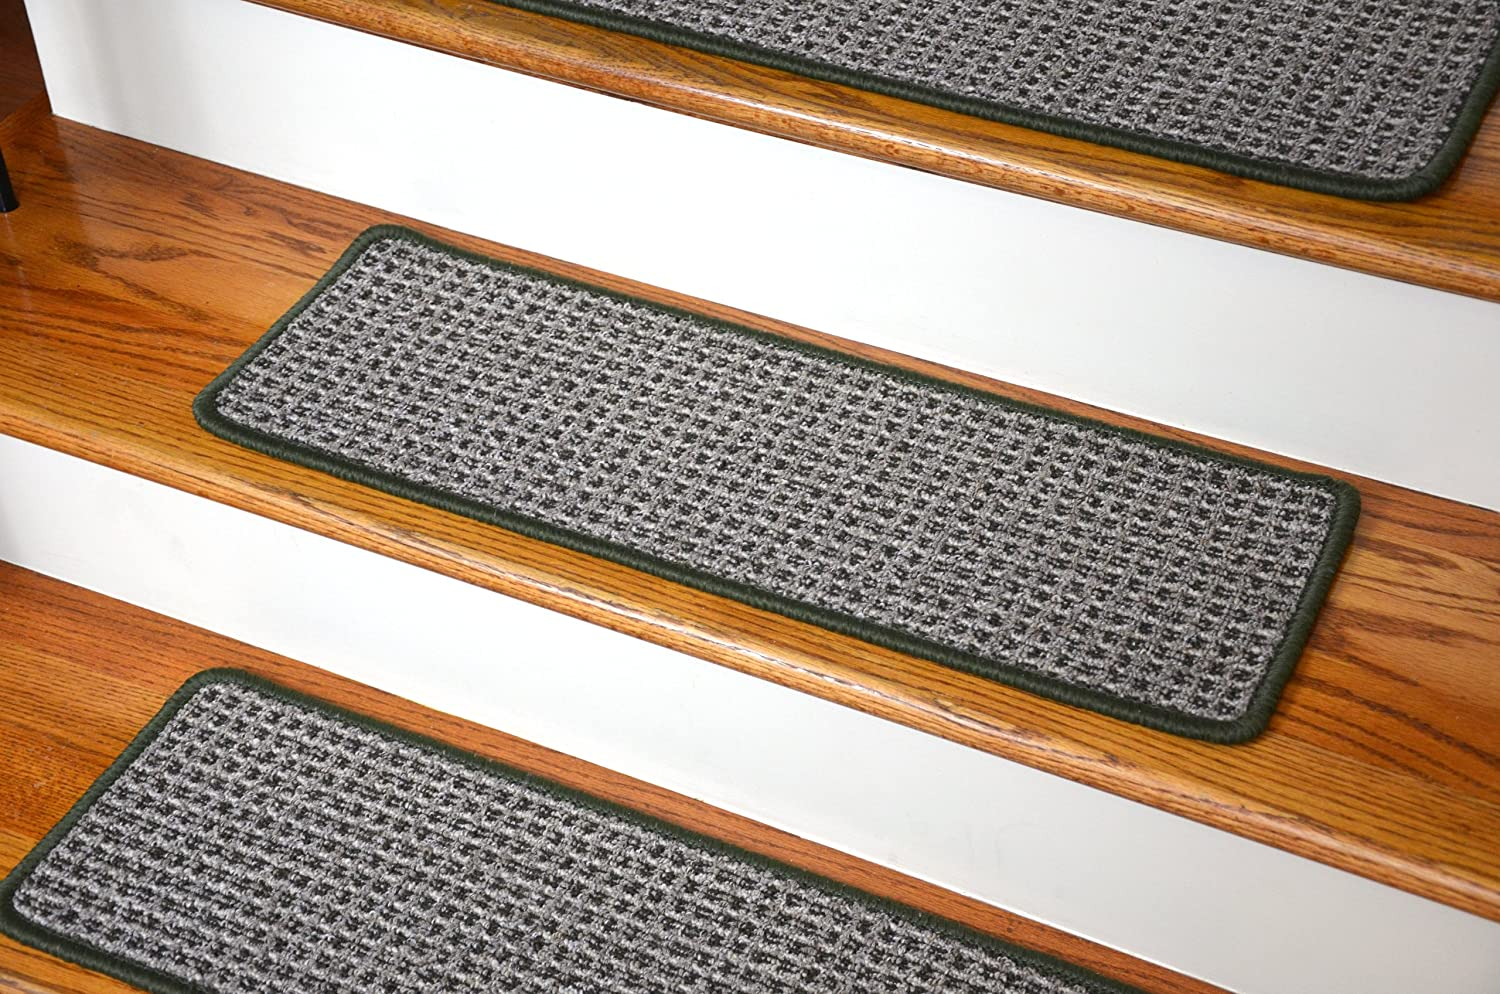 Washable Non-Skid Carpet Stair Treads - Chameleon (13) Dean Flooring Company ST-031911A